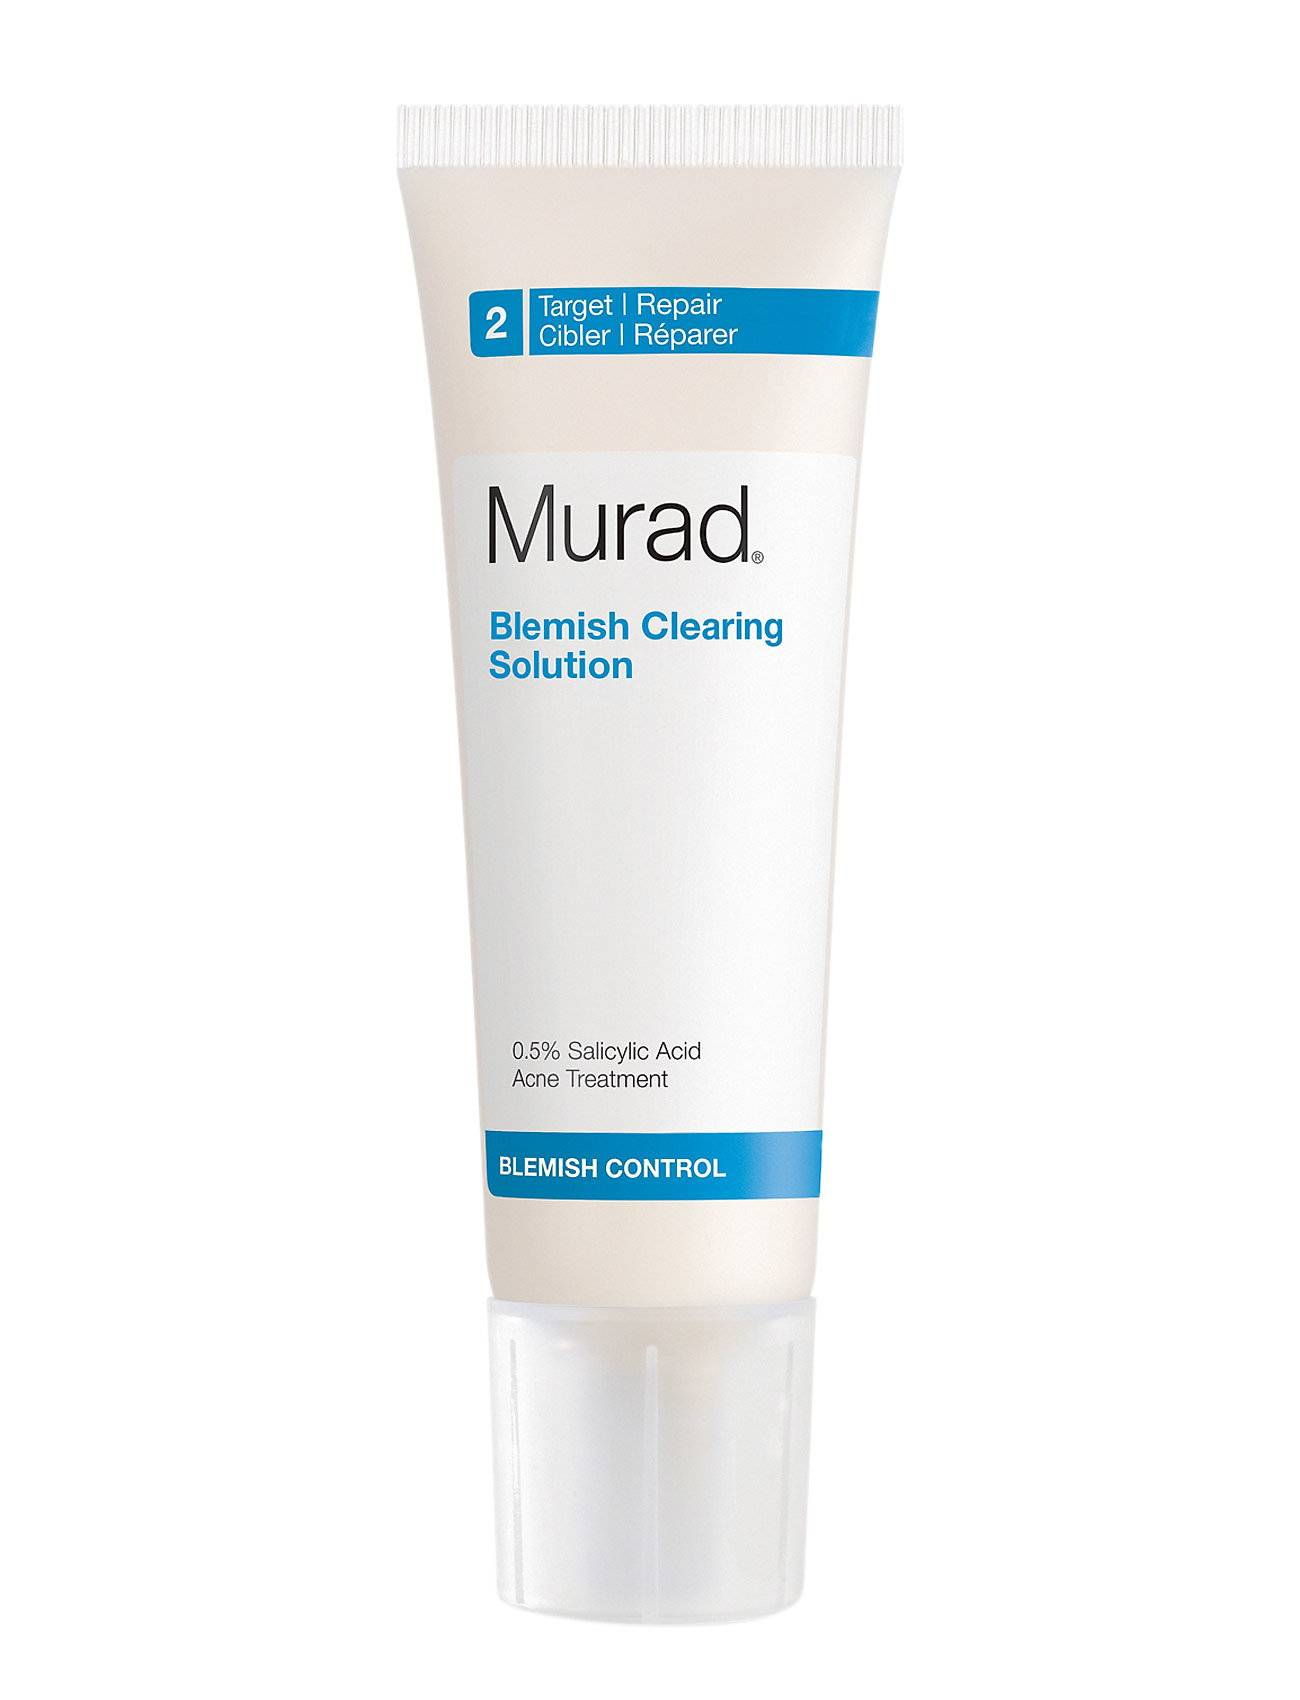 Murad Blemish Control Blemish Clearing Solution